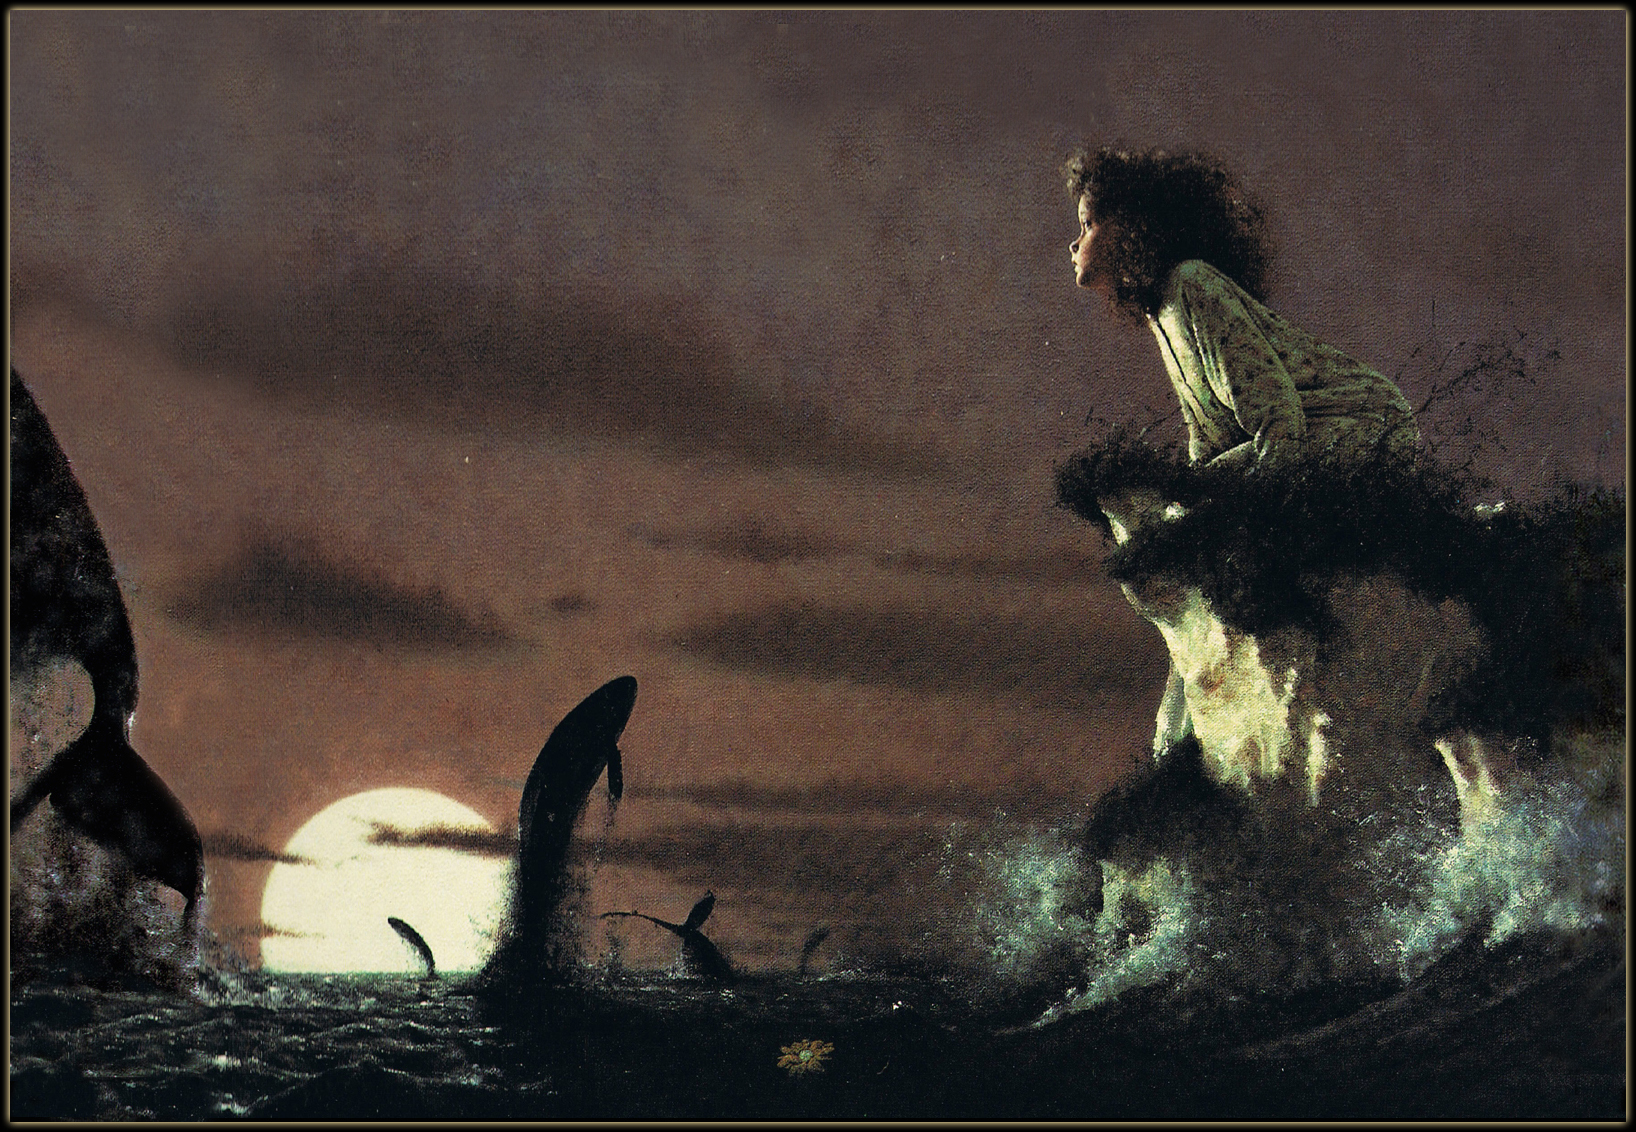 Gary Blythe, The Whales' Song, They leapt and jumped and spun across the moon, 1990